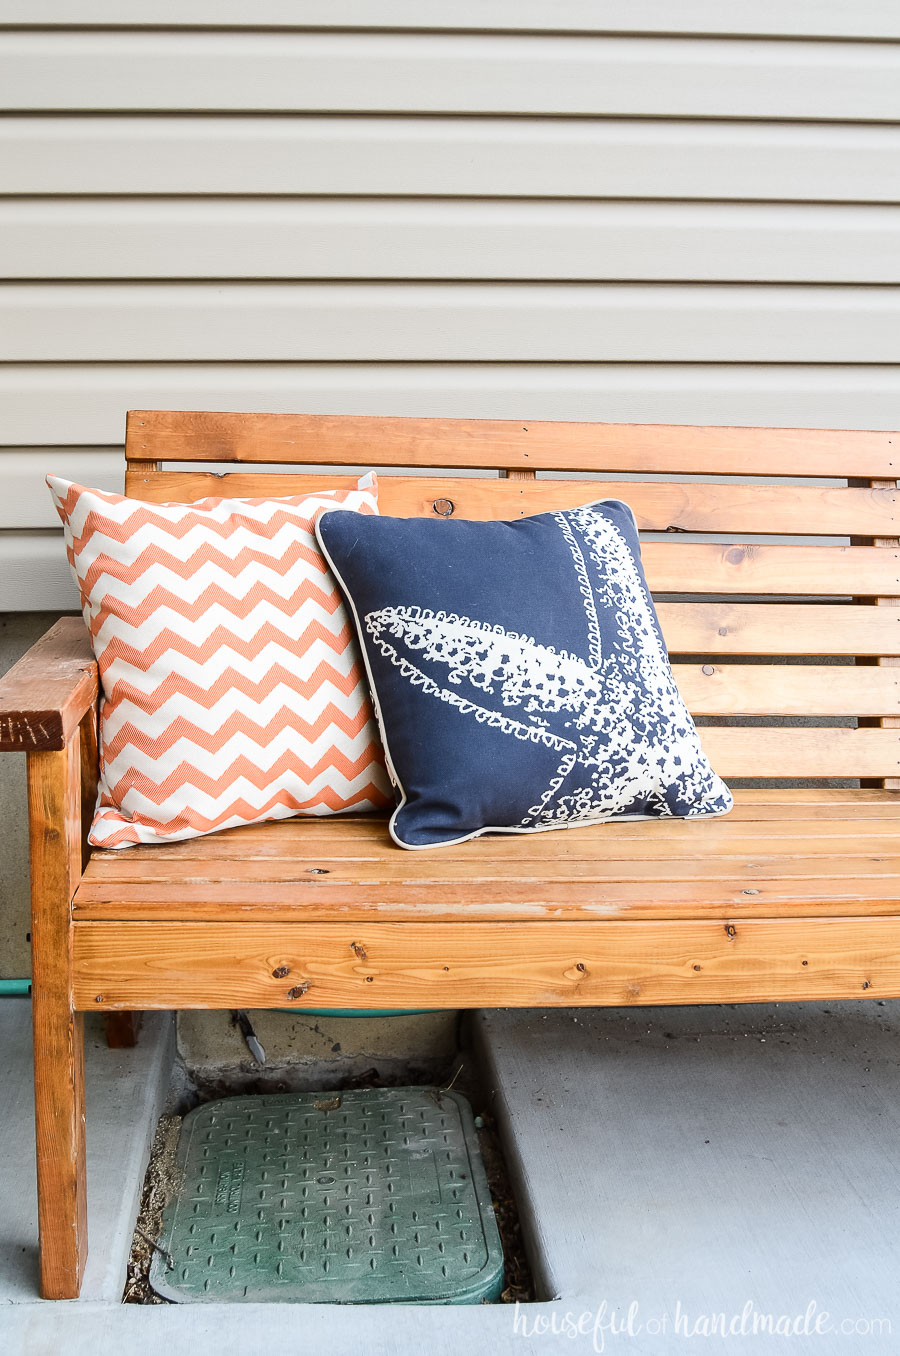 Outdoor bench with island inspired pillows gives our outdoor living space a tropical feel.